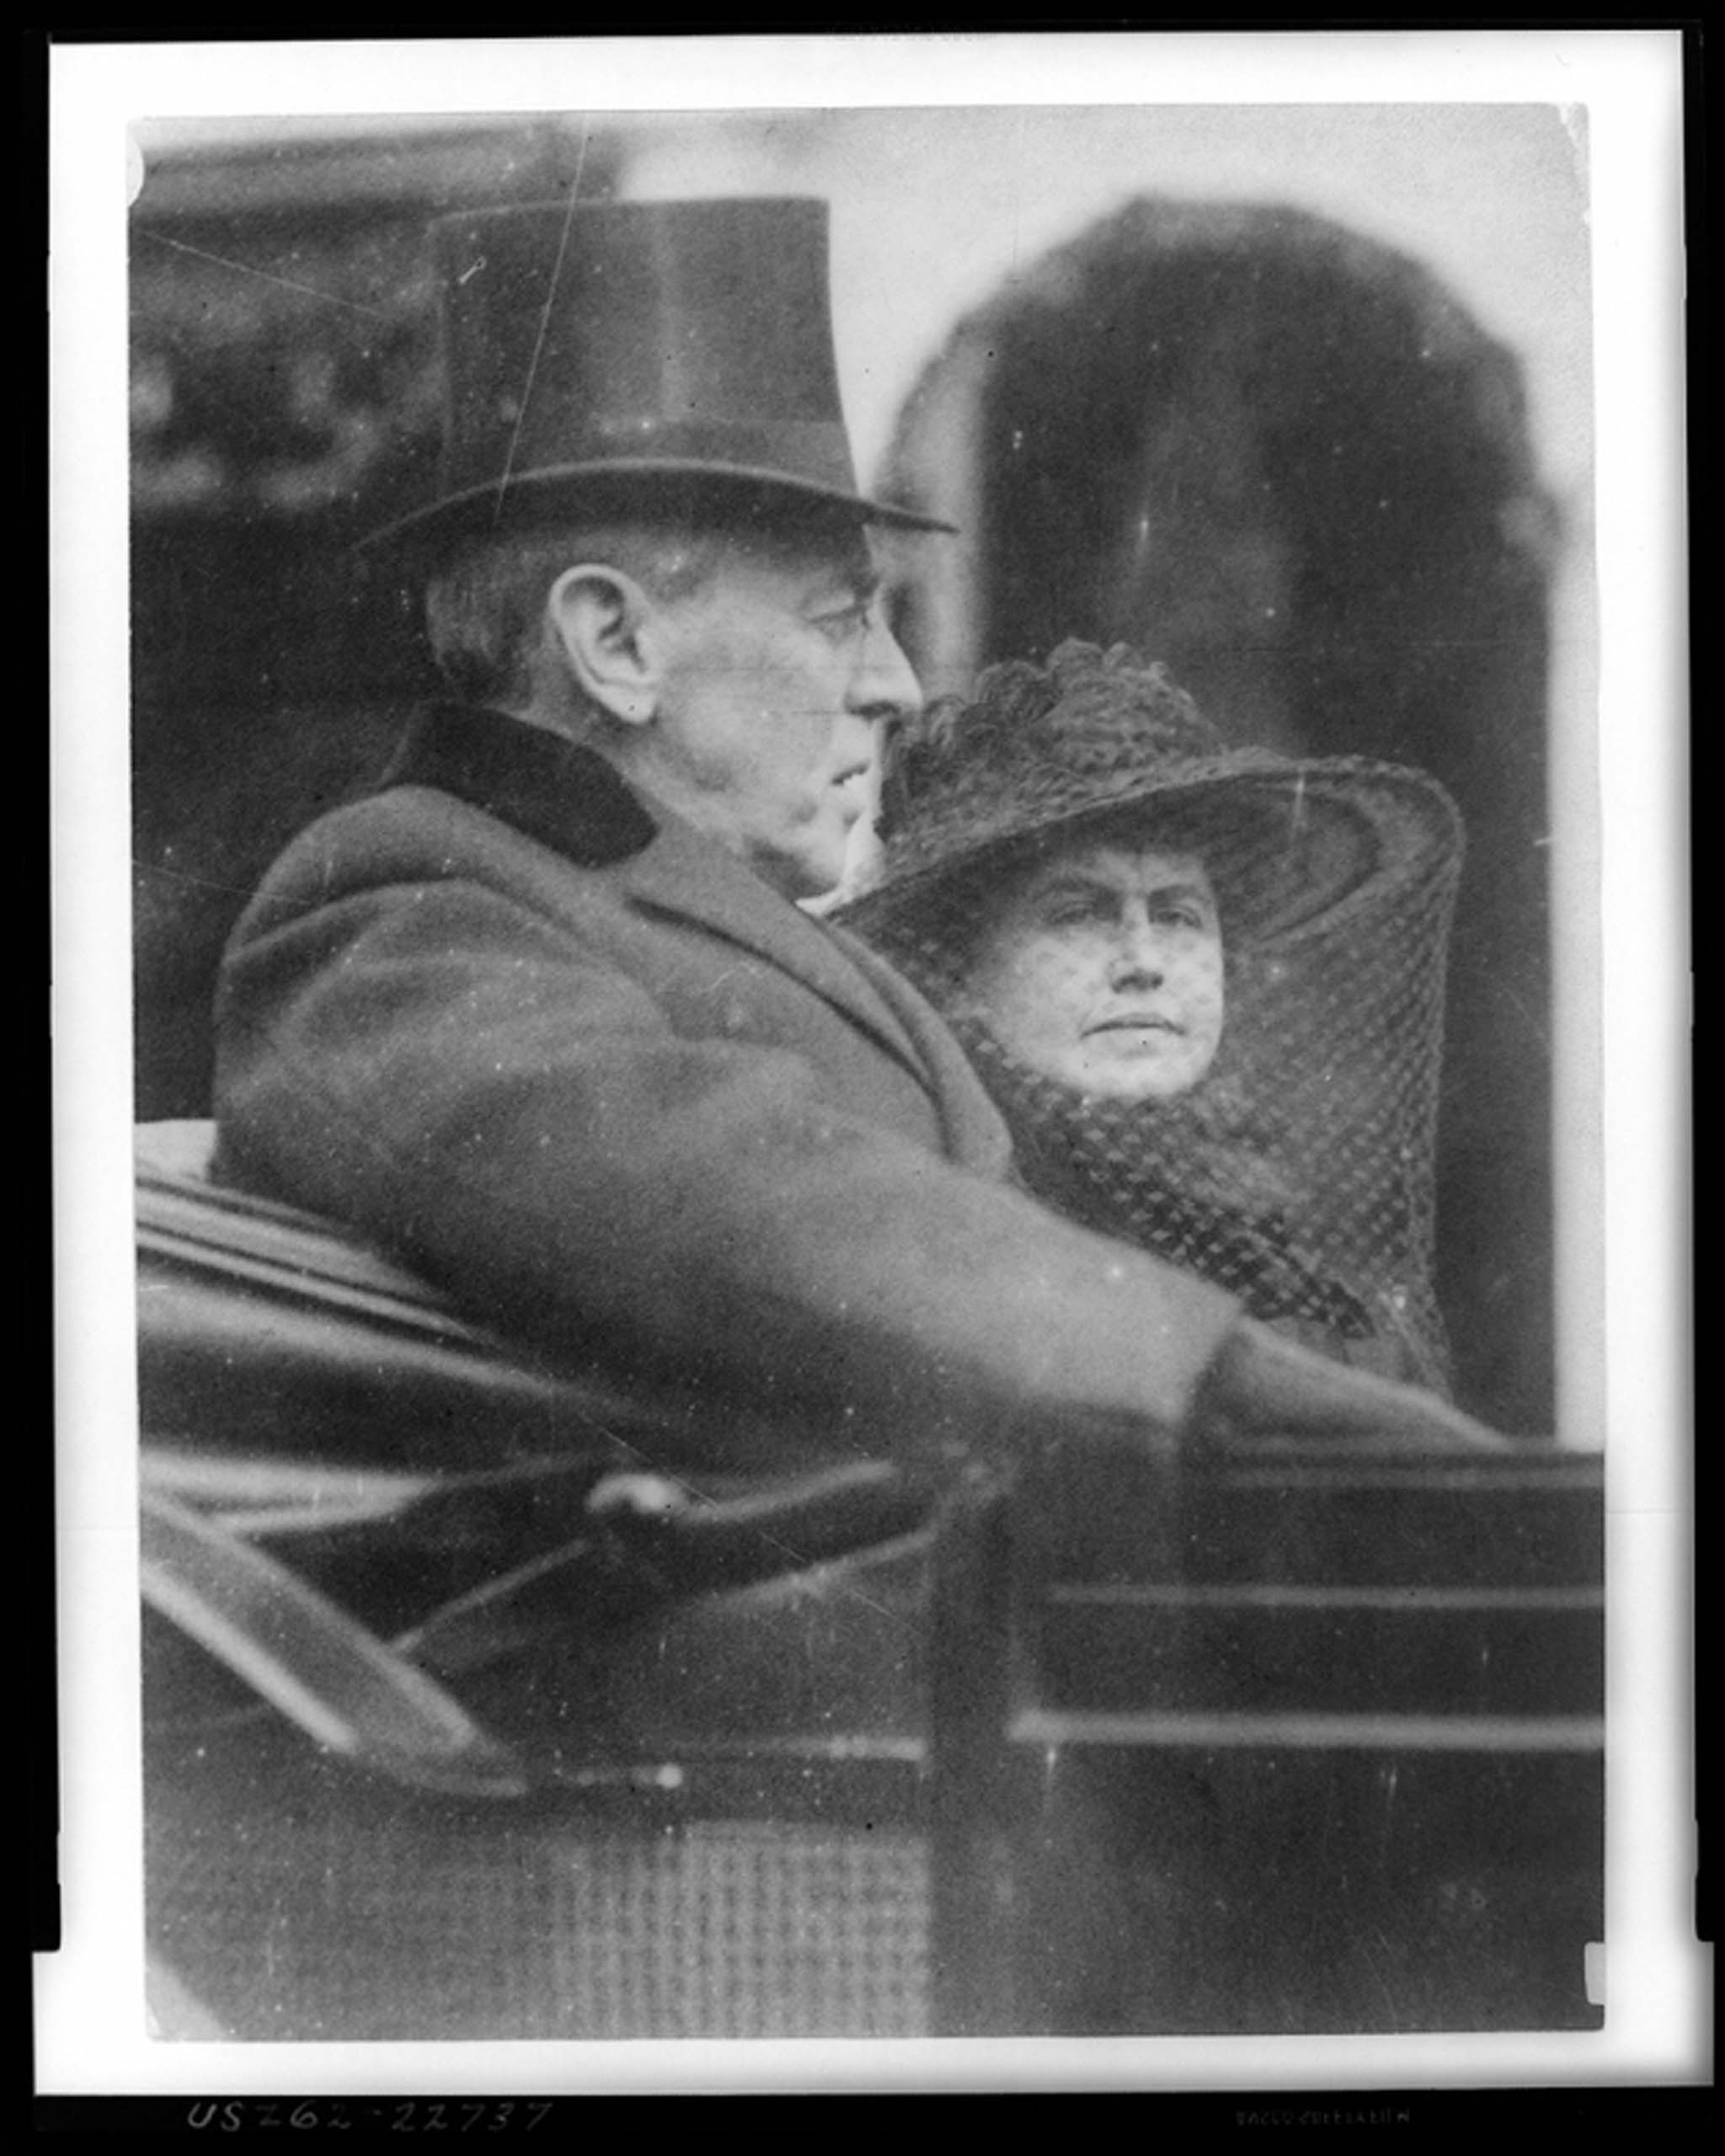 March 5, 1917. Woodrow Wilson and his wife Edith Bolling Wilson riding in the backseat of a carriage on their way to his second inauguration.